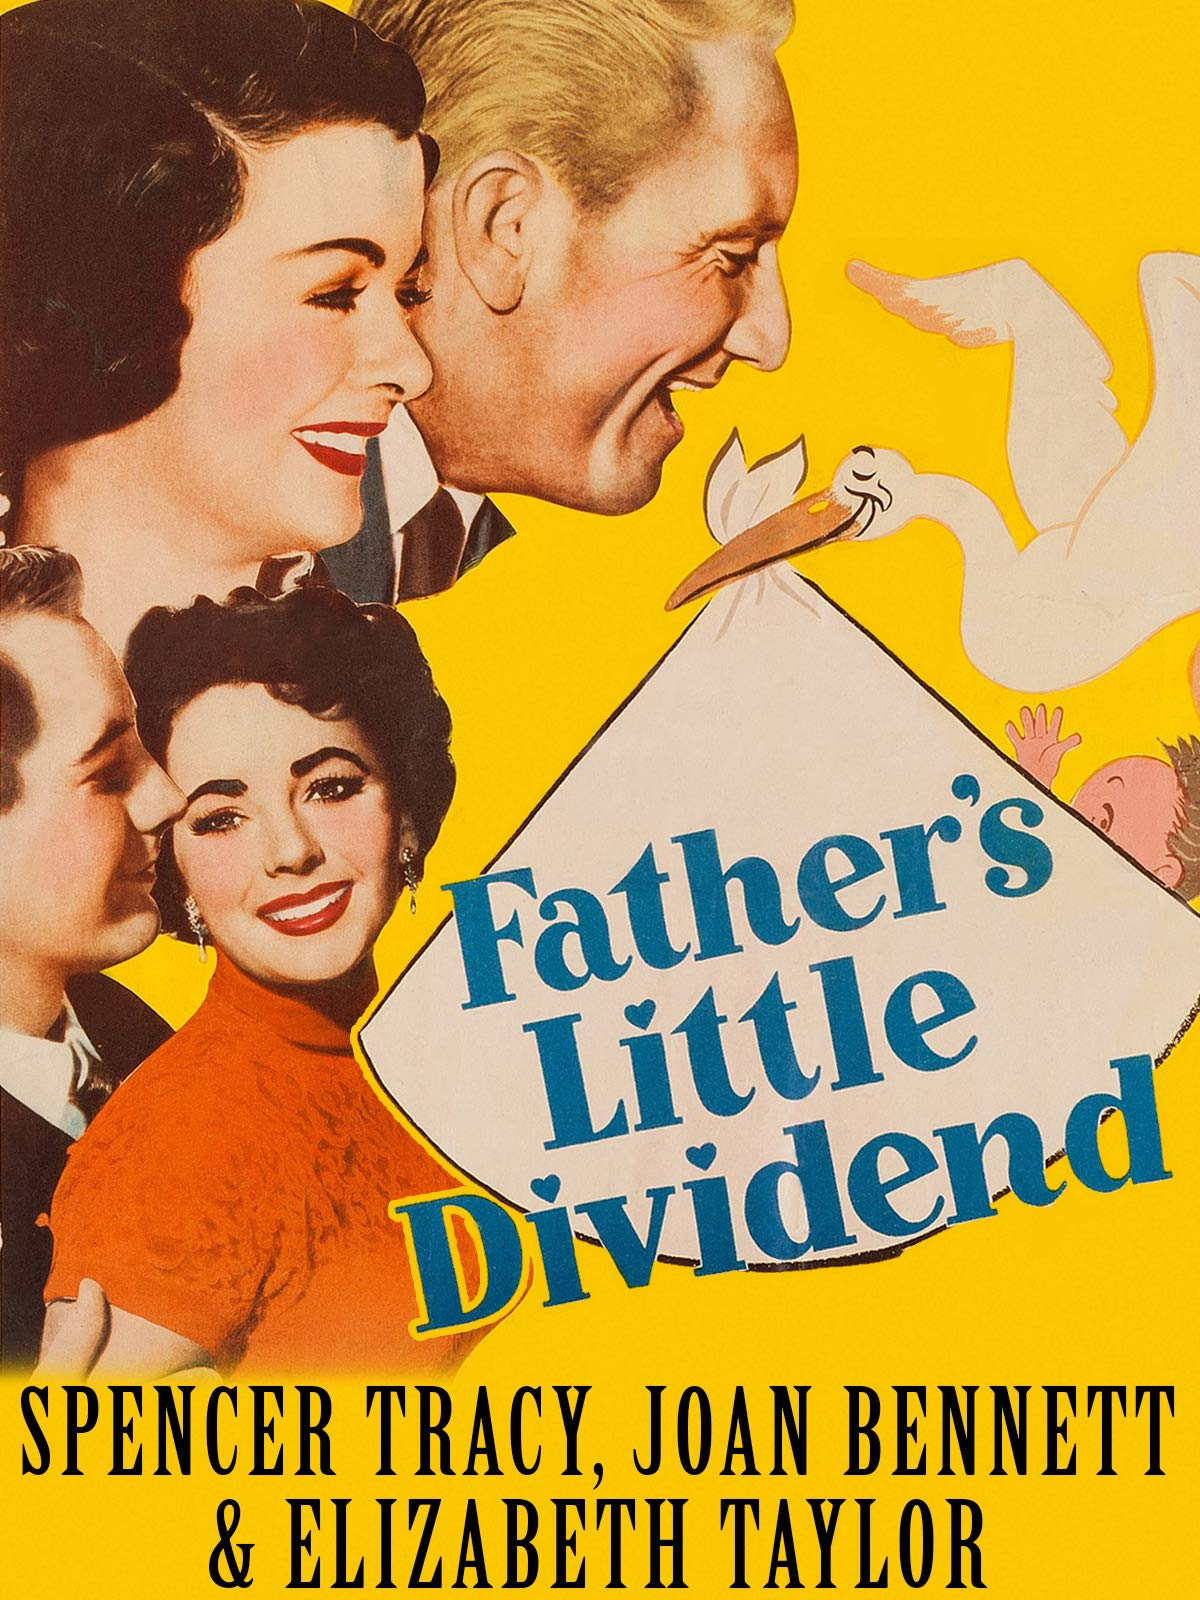 Watch Father's Little Dividend - Spencer Tracy, Joan Bennett, & Elizabeth Taylor on Amazon Prime Instant Video UK